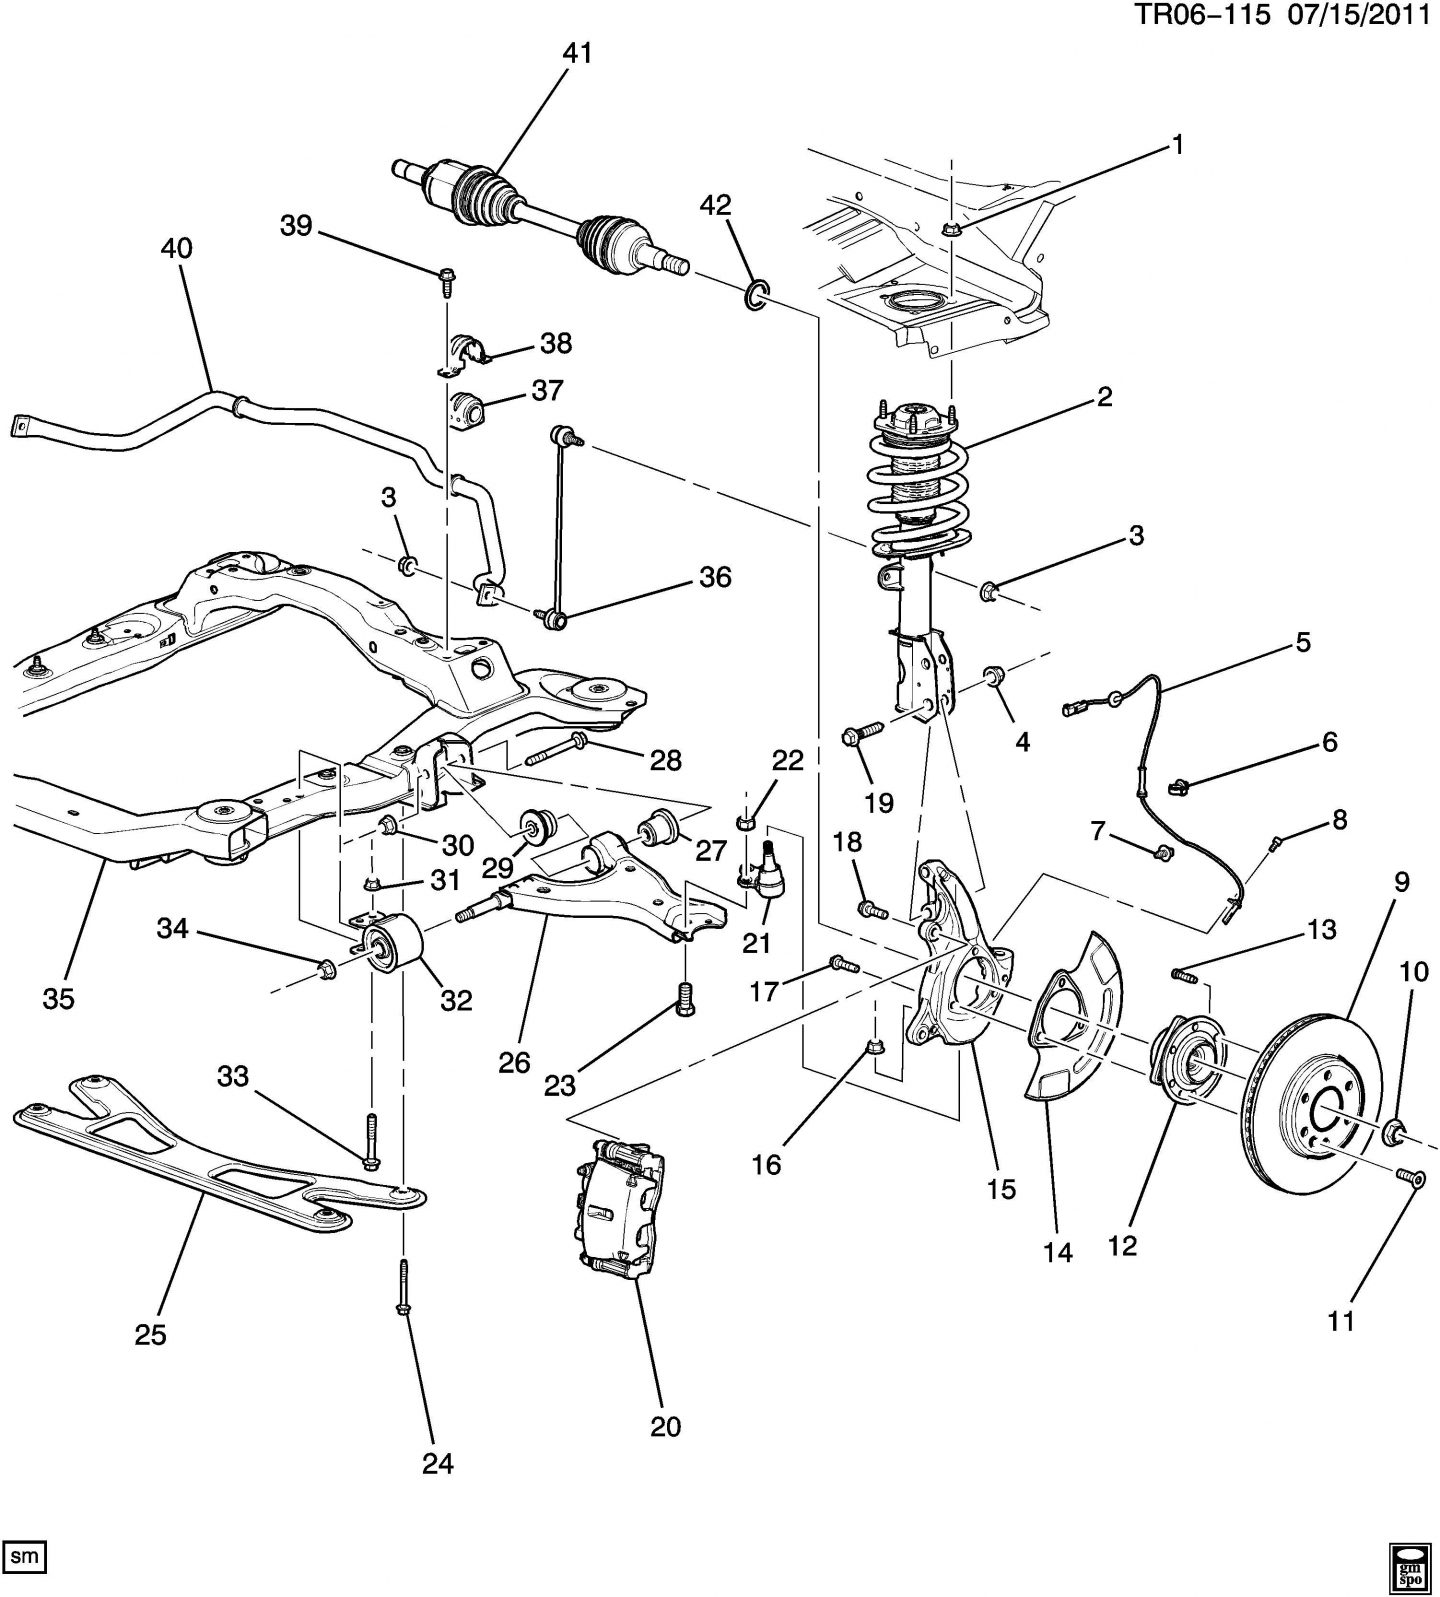 hight resolution of 1440x1597 trailer hitch wiring diagram chevy pin standardside seven